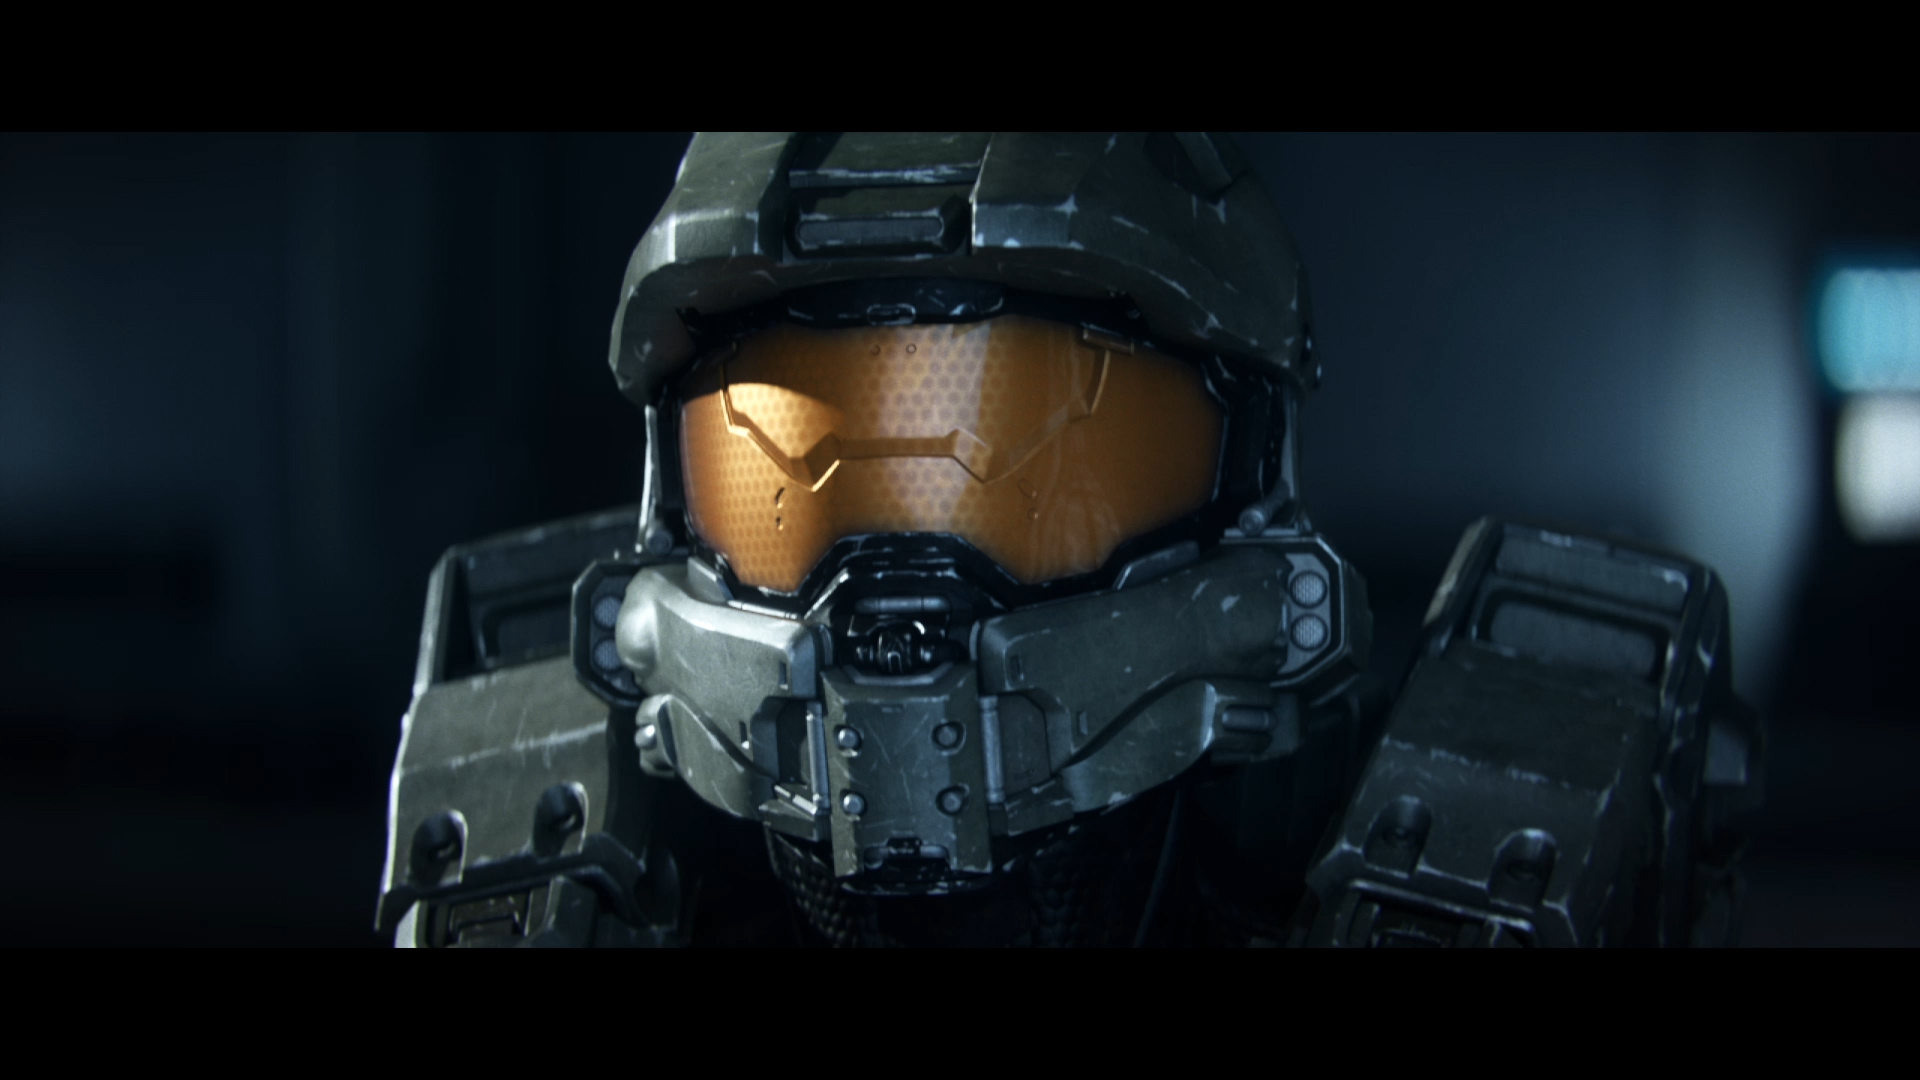 Halo | Xbox – Get the latest Halo games and media